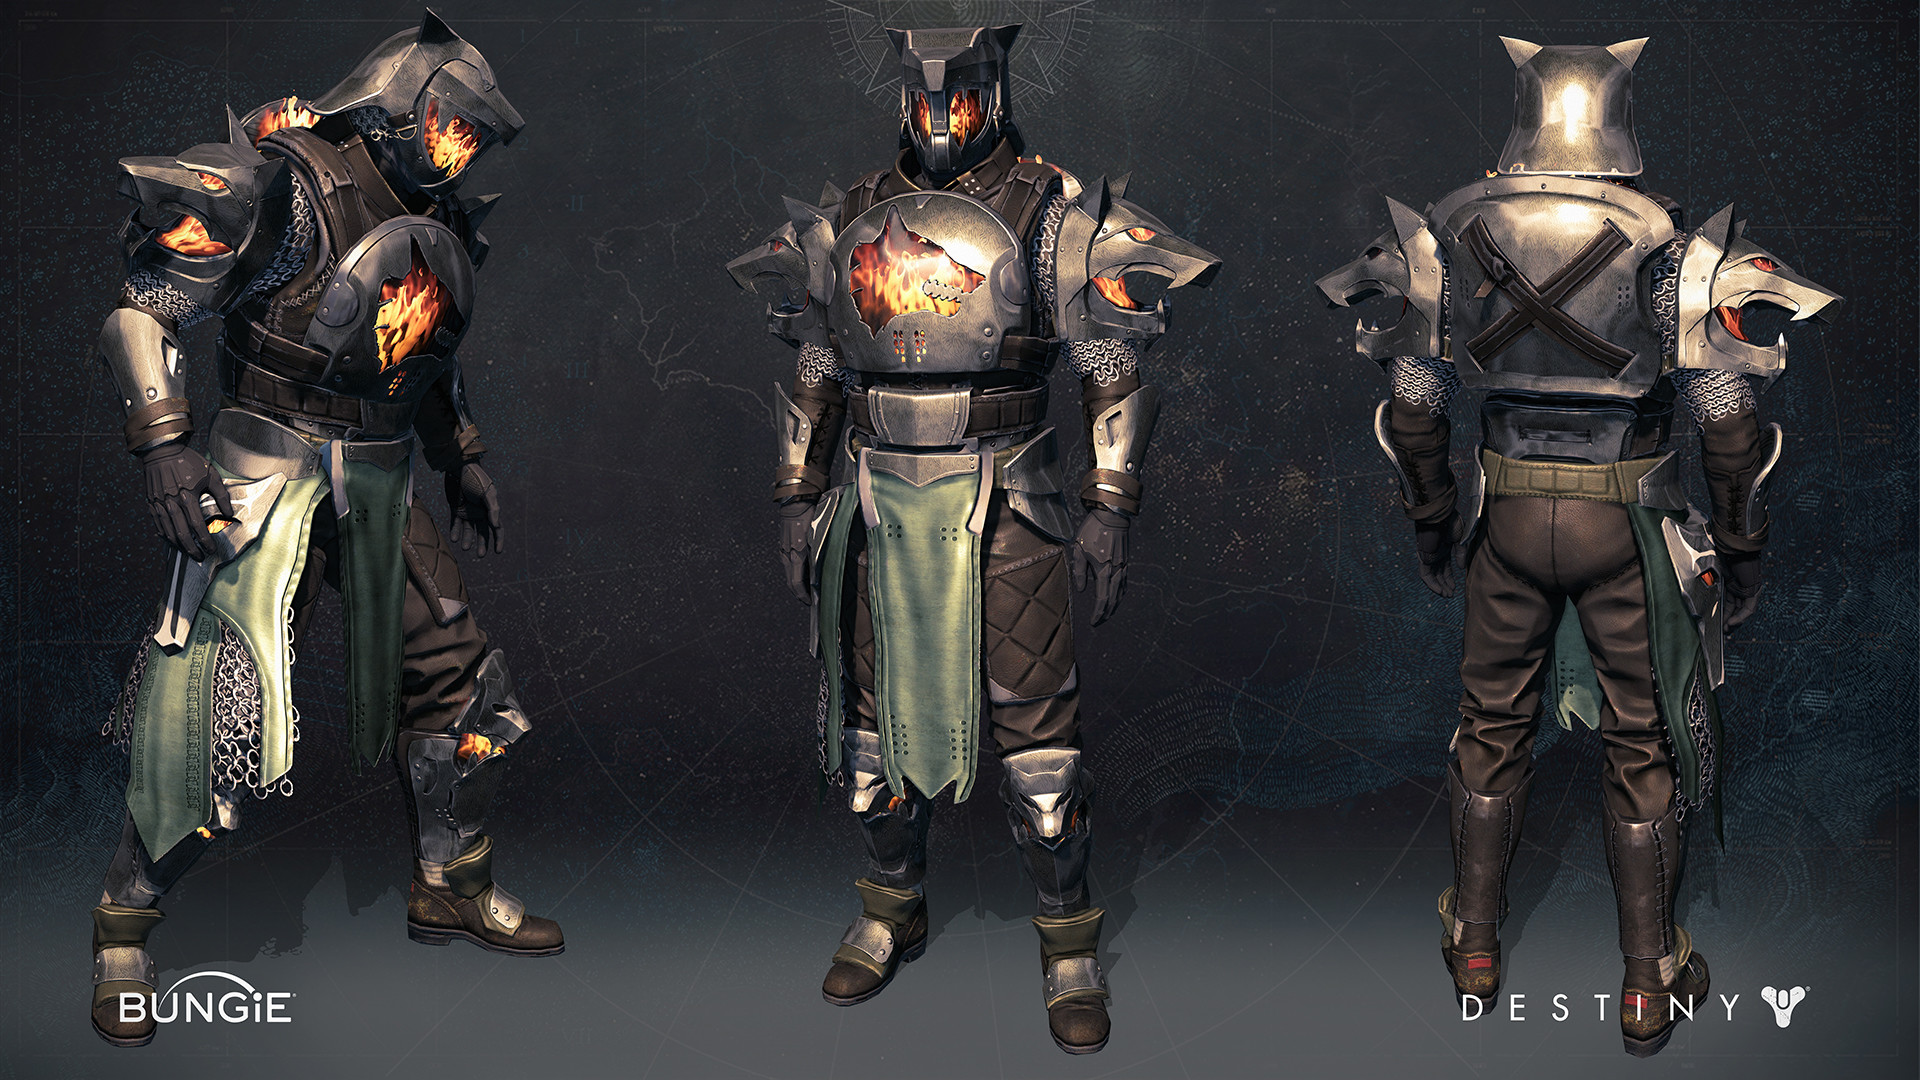 Destiny 2 Kings Fall Wallpaper Destiny Rise Of Iron Character Models 133 Escape The